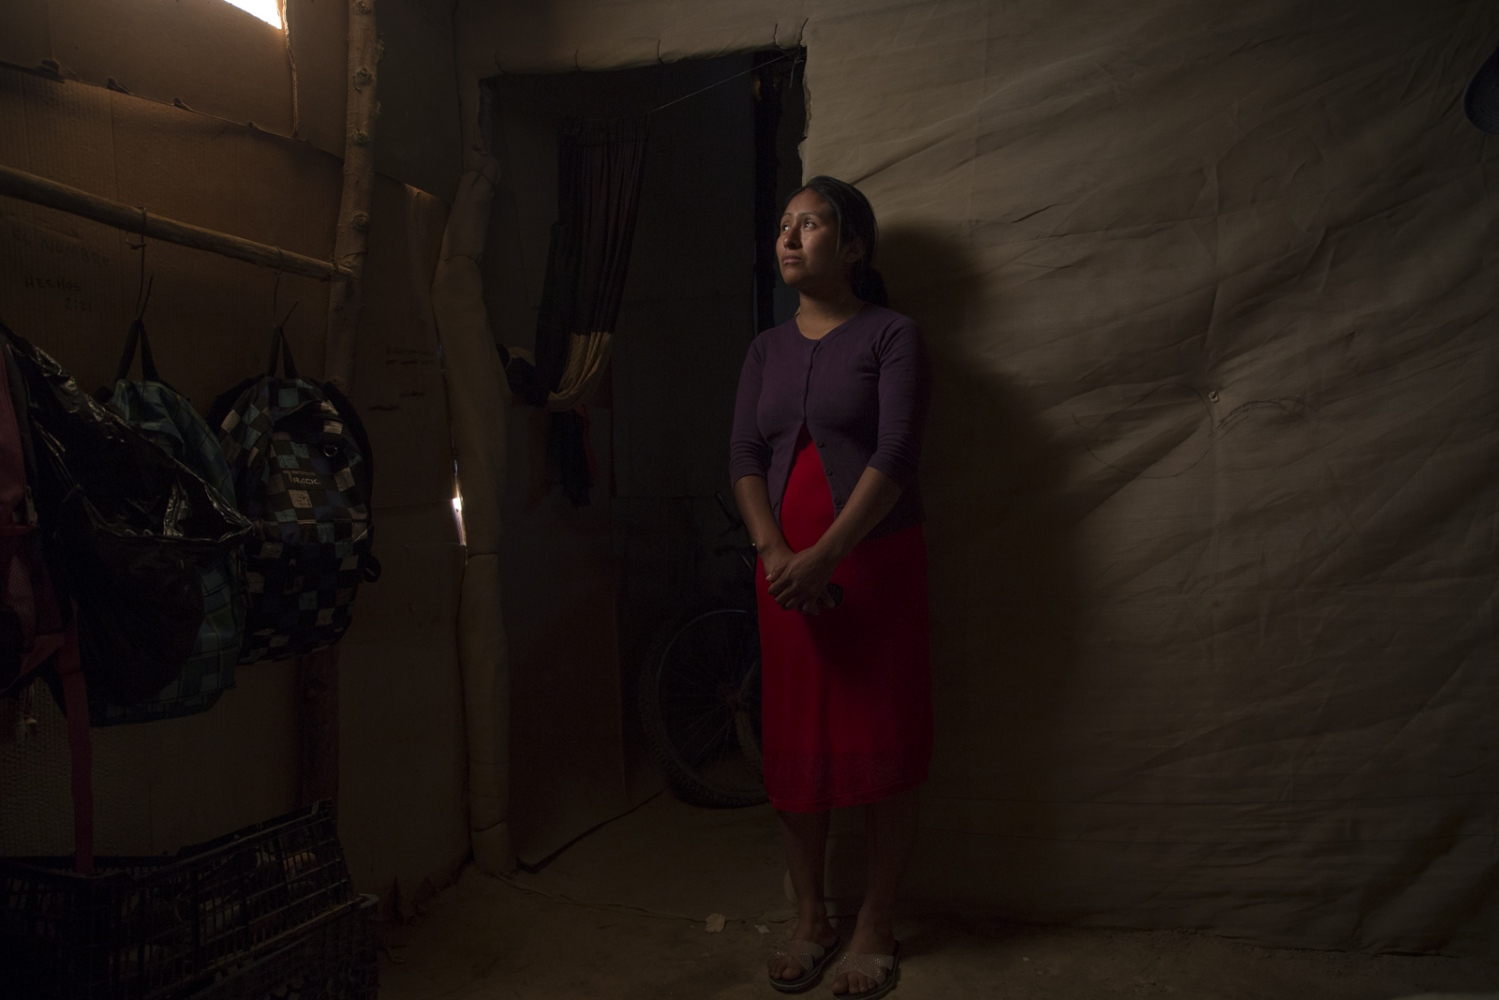 Isabel Policao inside of her humble house made of cardboard and plastic in Mexico's San Quintin valley.